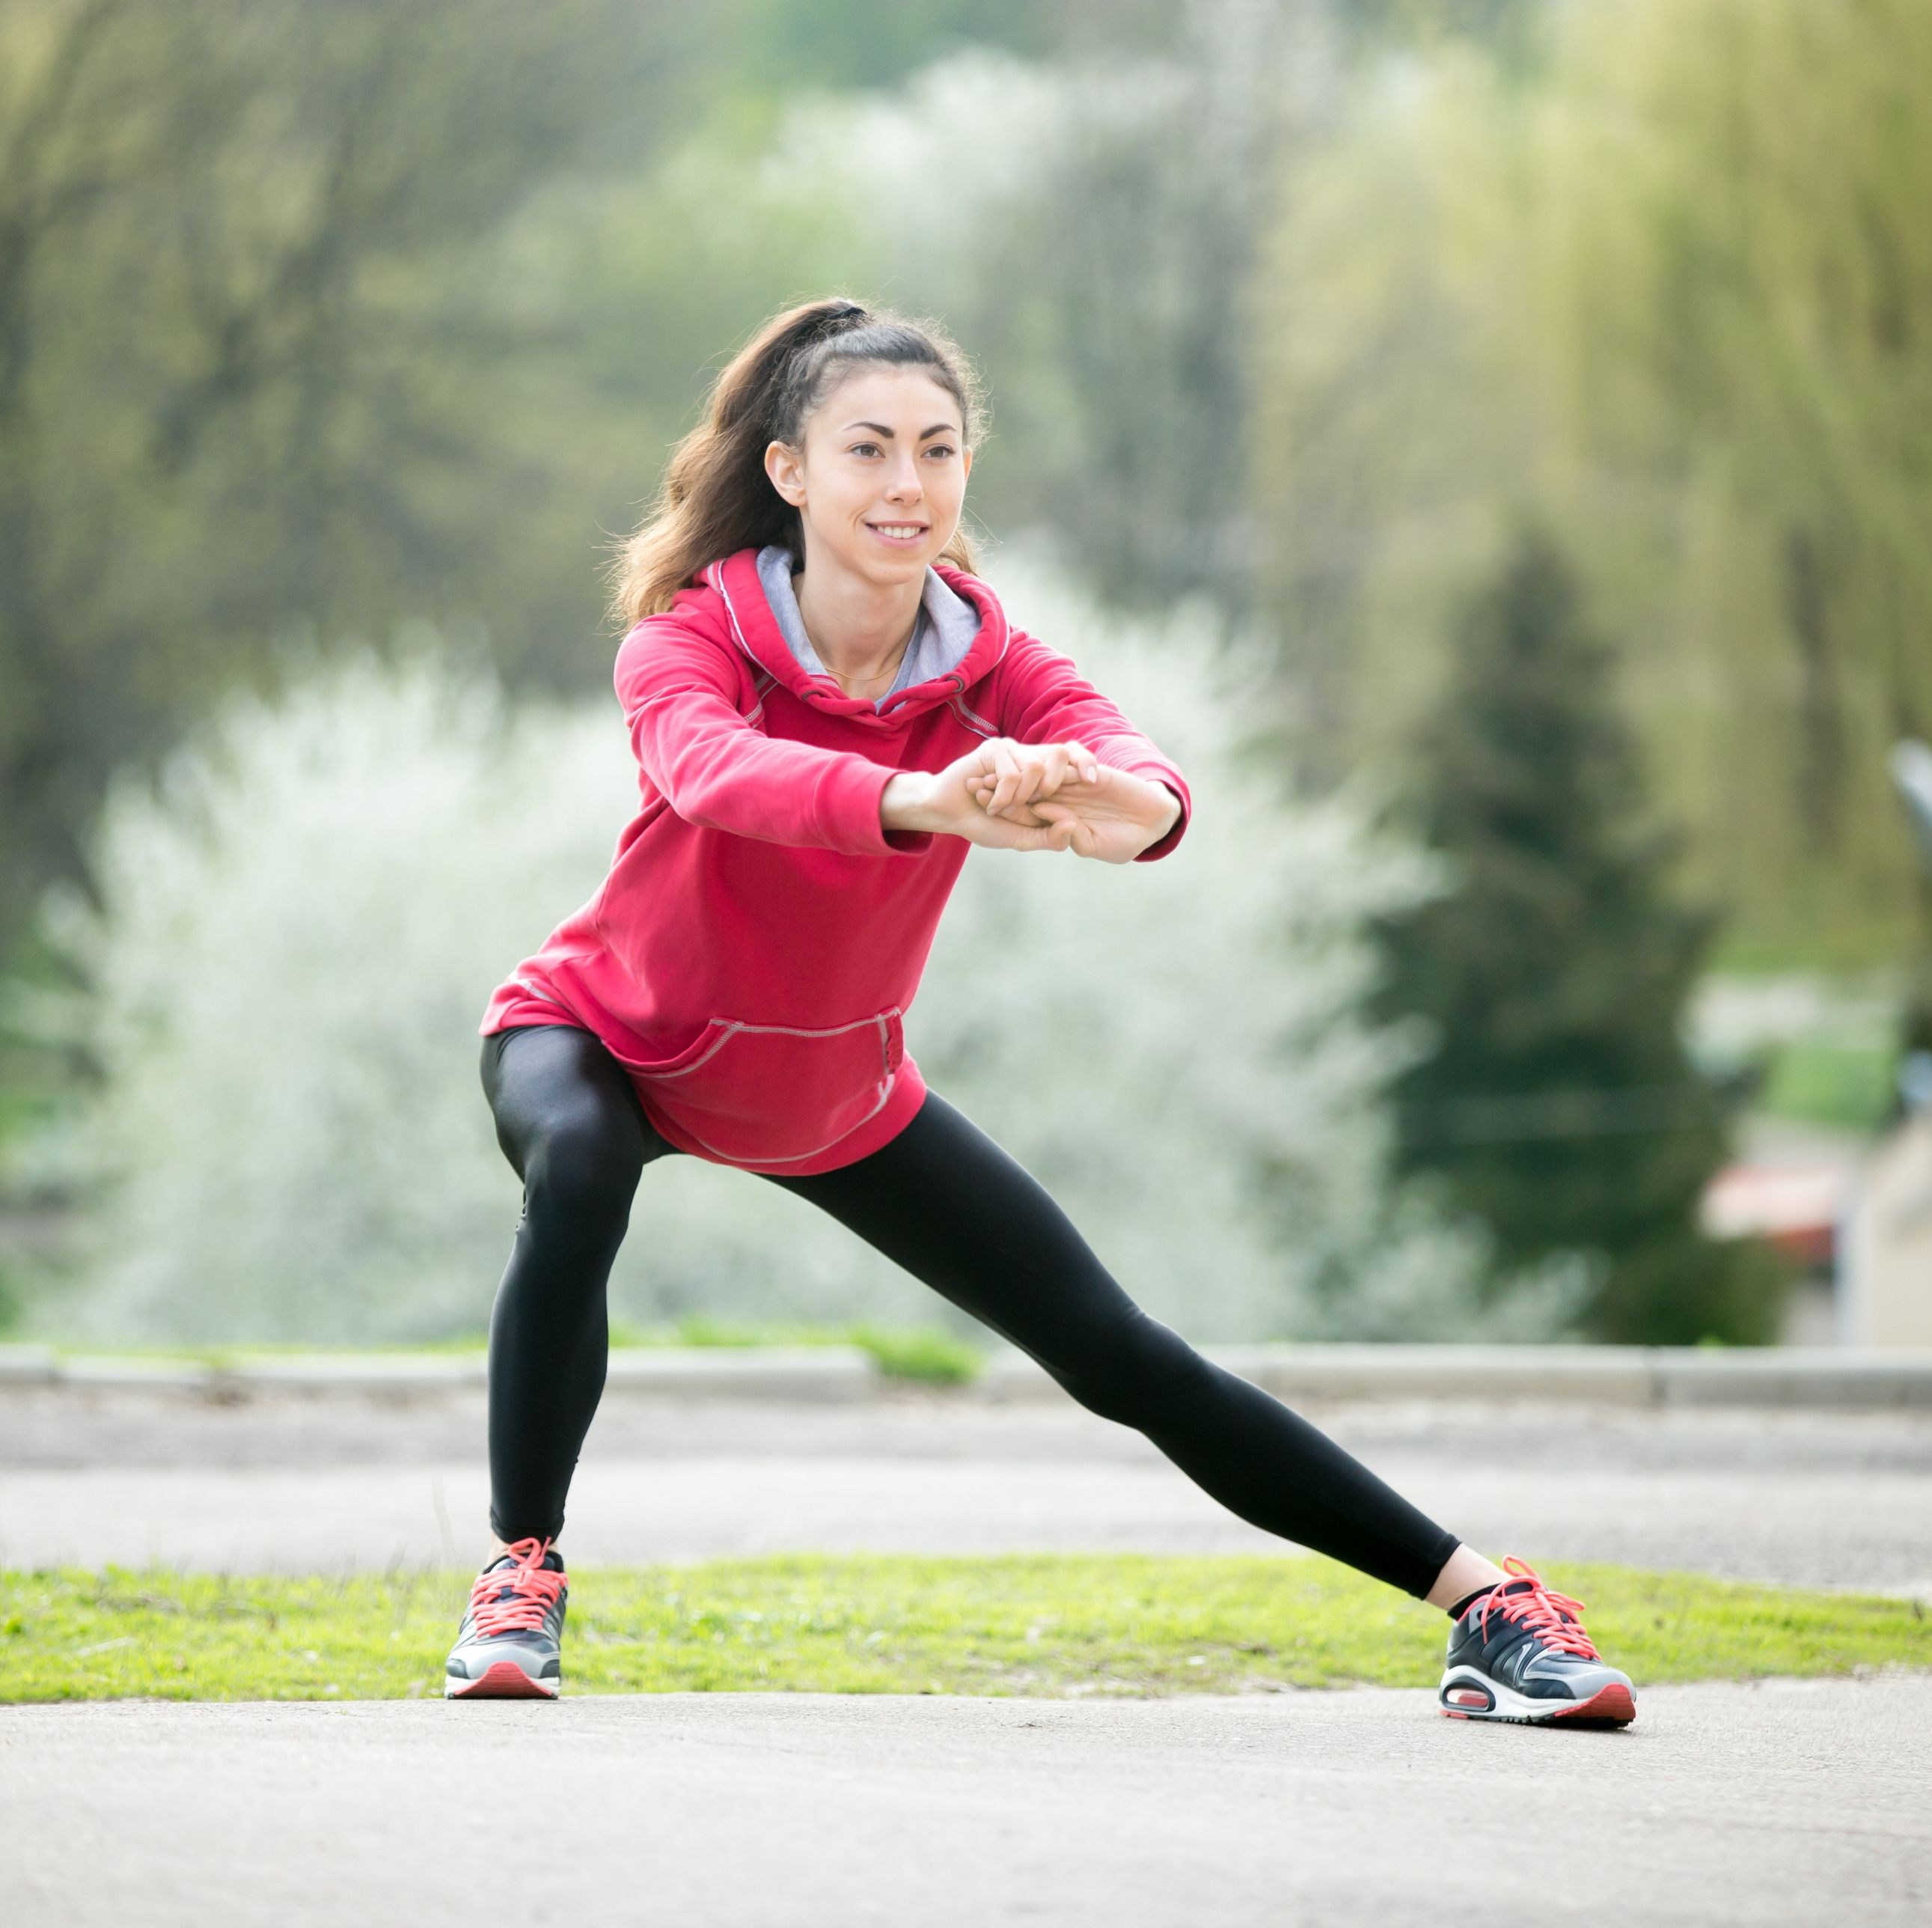 Runner woman doing side lunges before jogging